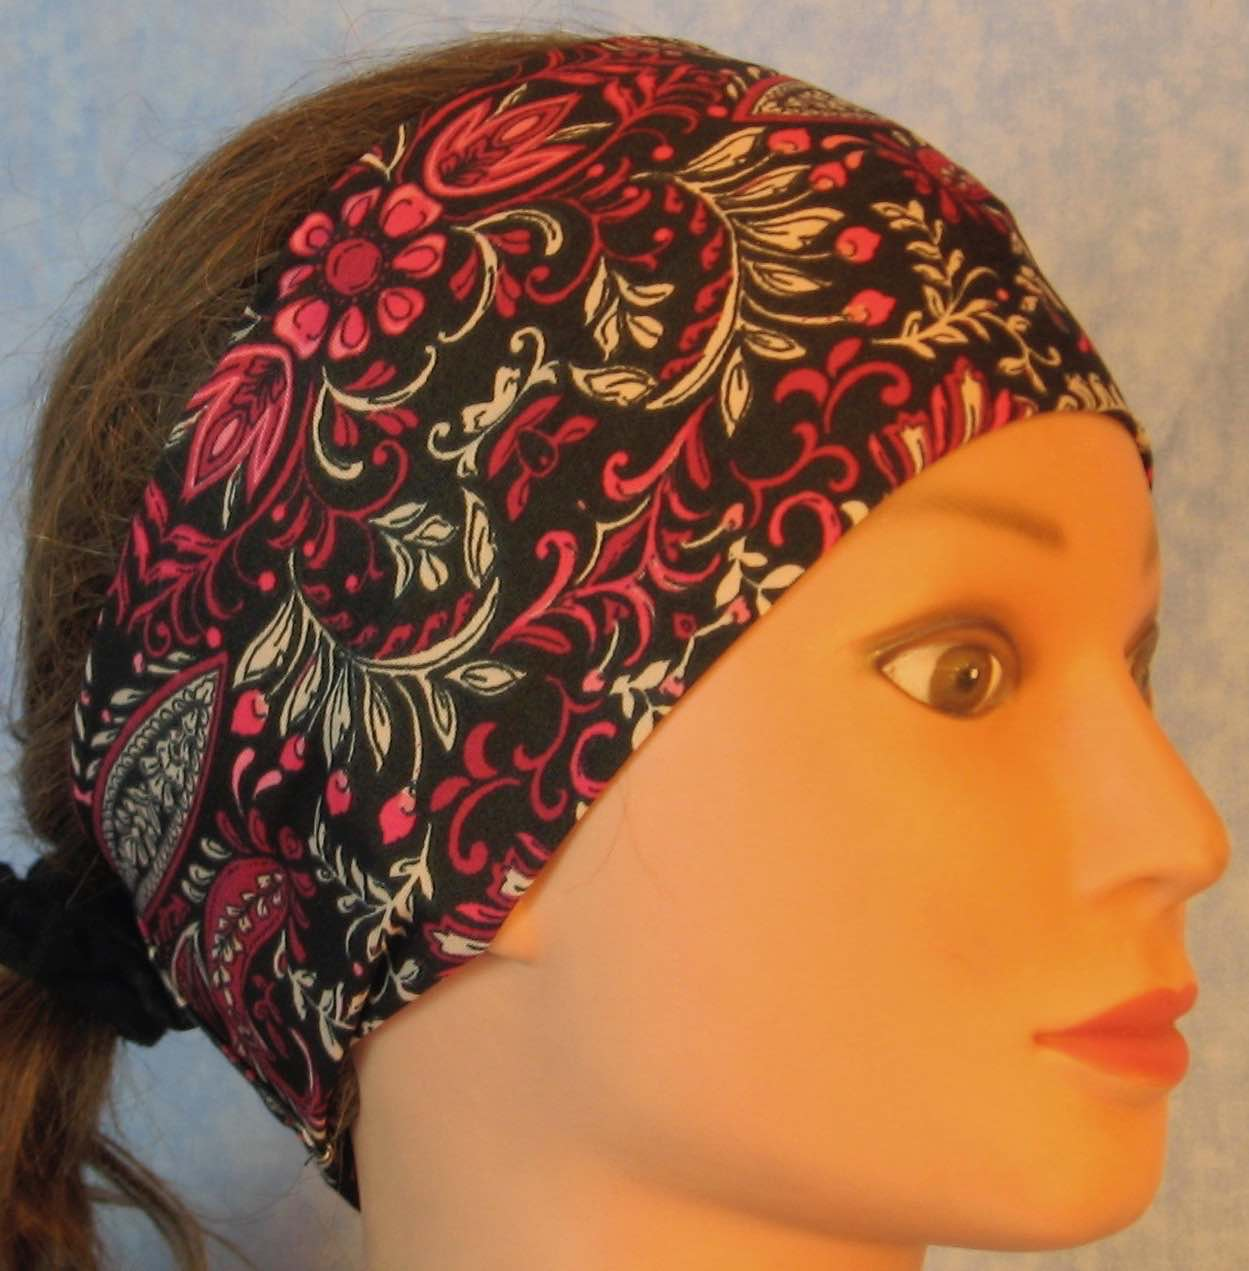 Headband-Pink Flower Paisley Leaves on Black Performance Knit-Youth L-XL